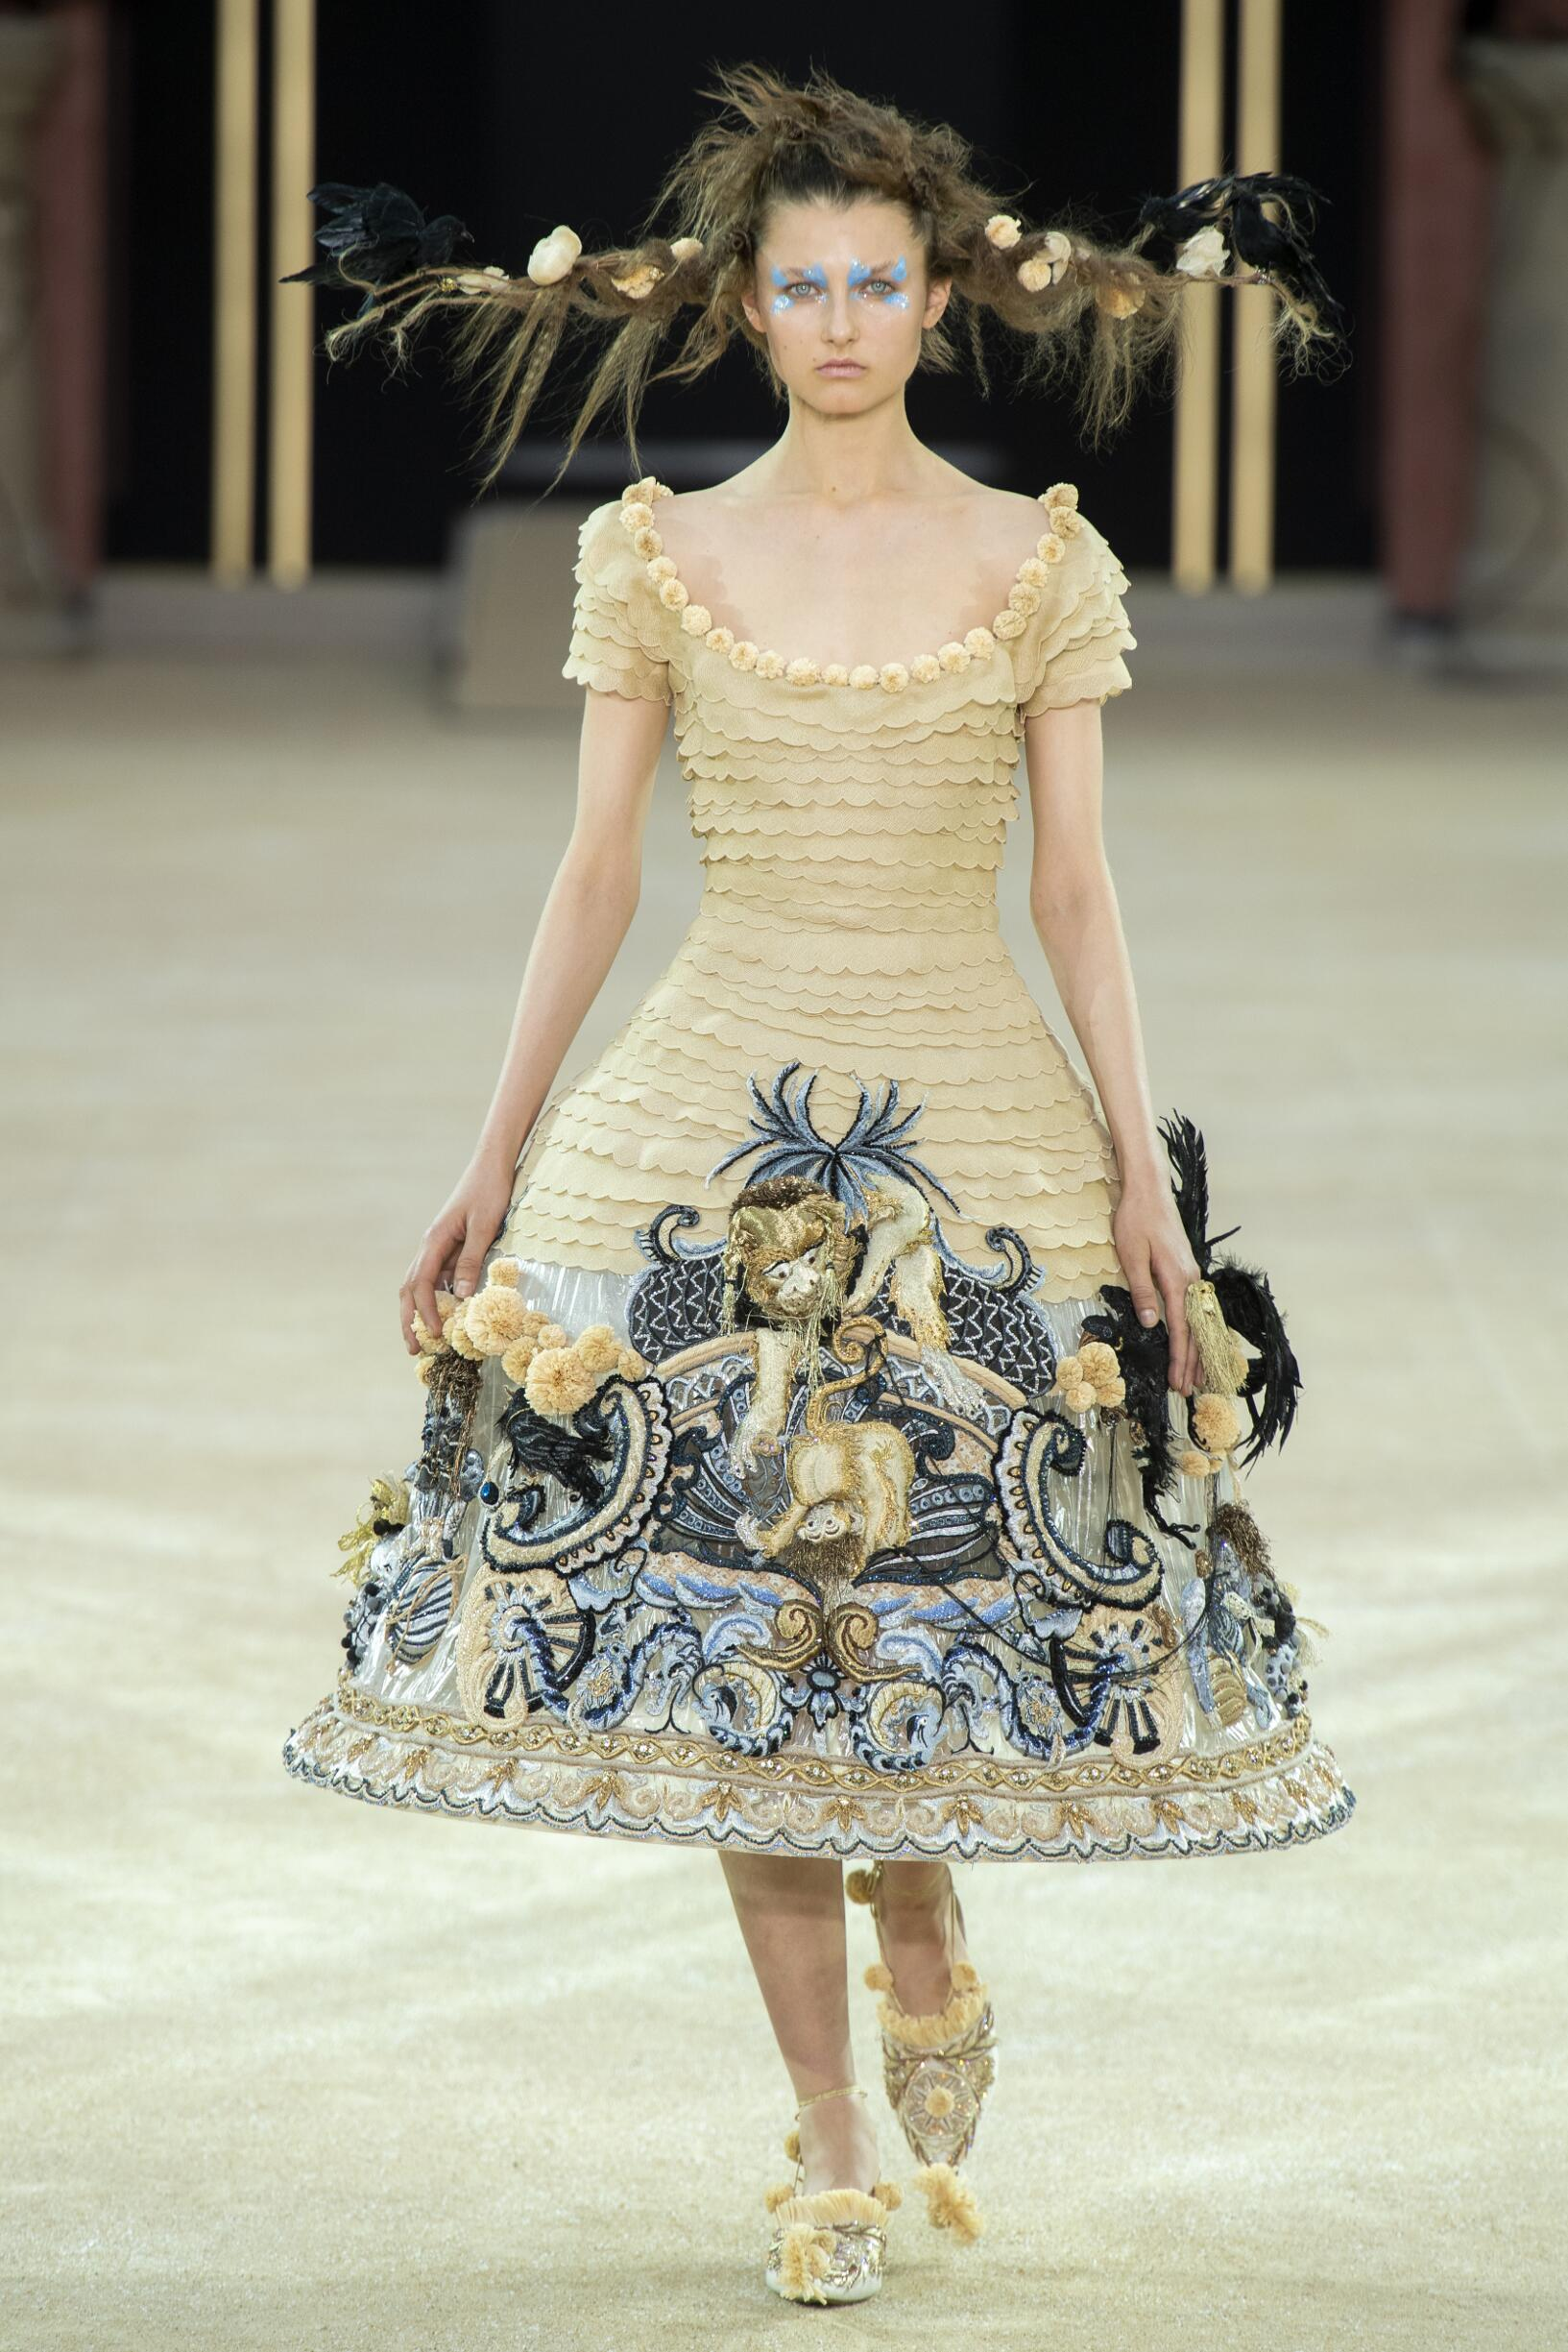 FW 2019-20 Guo Pei Haute Couture Fashion Show